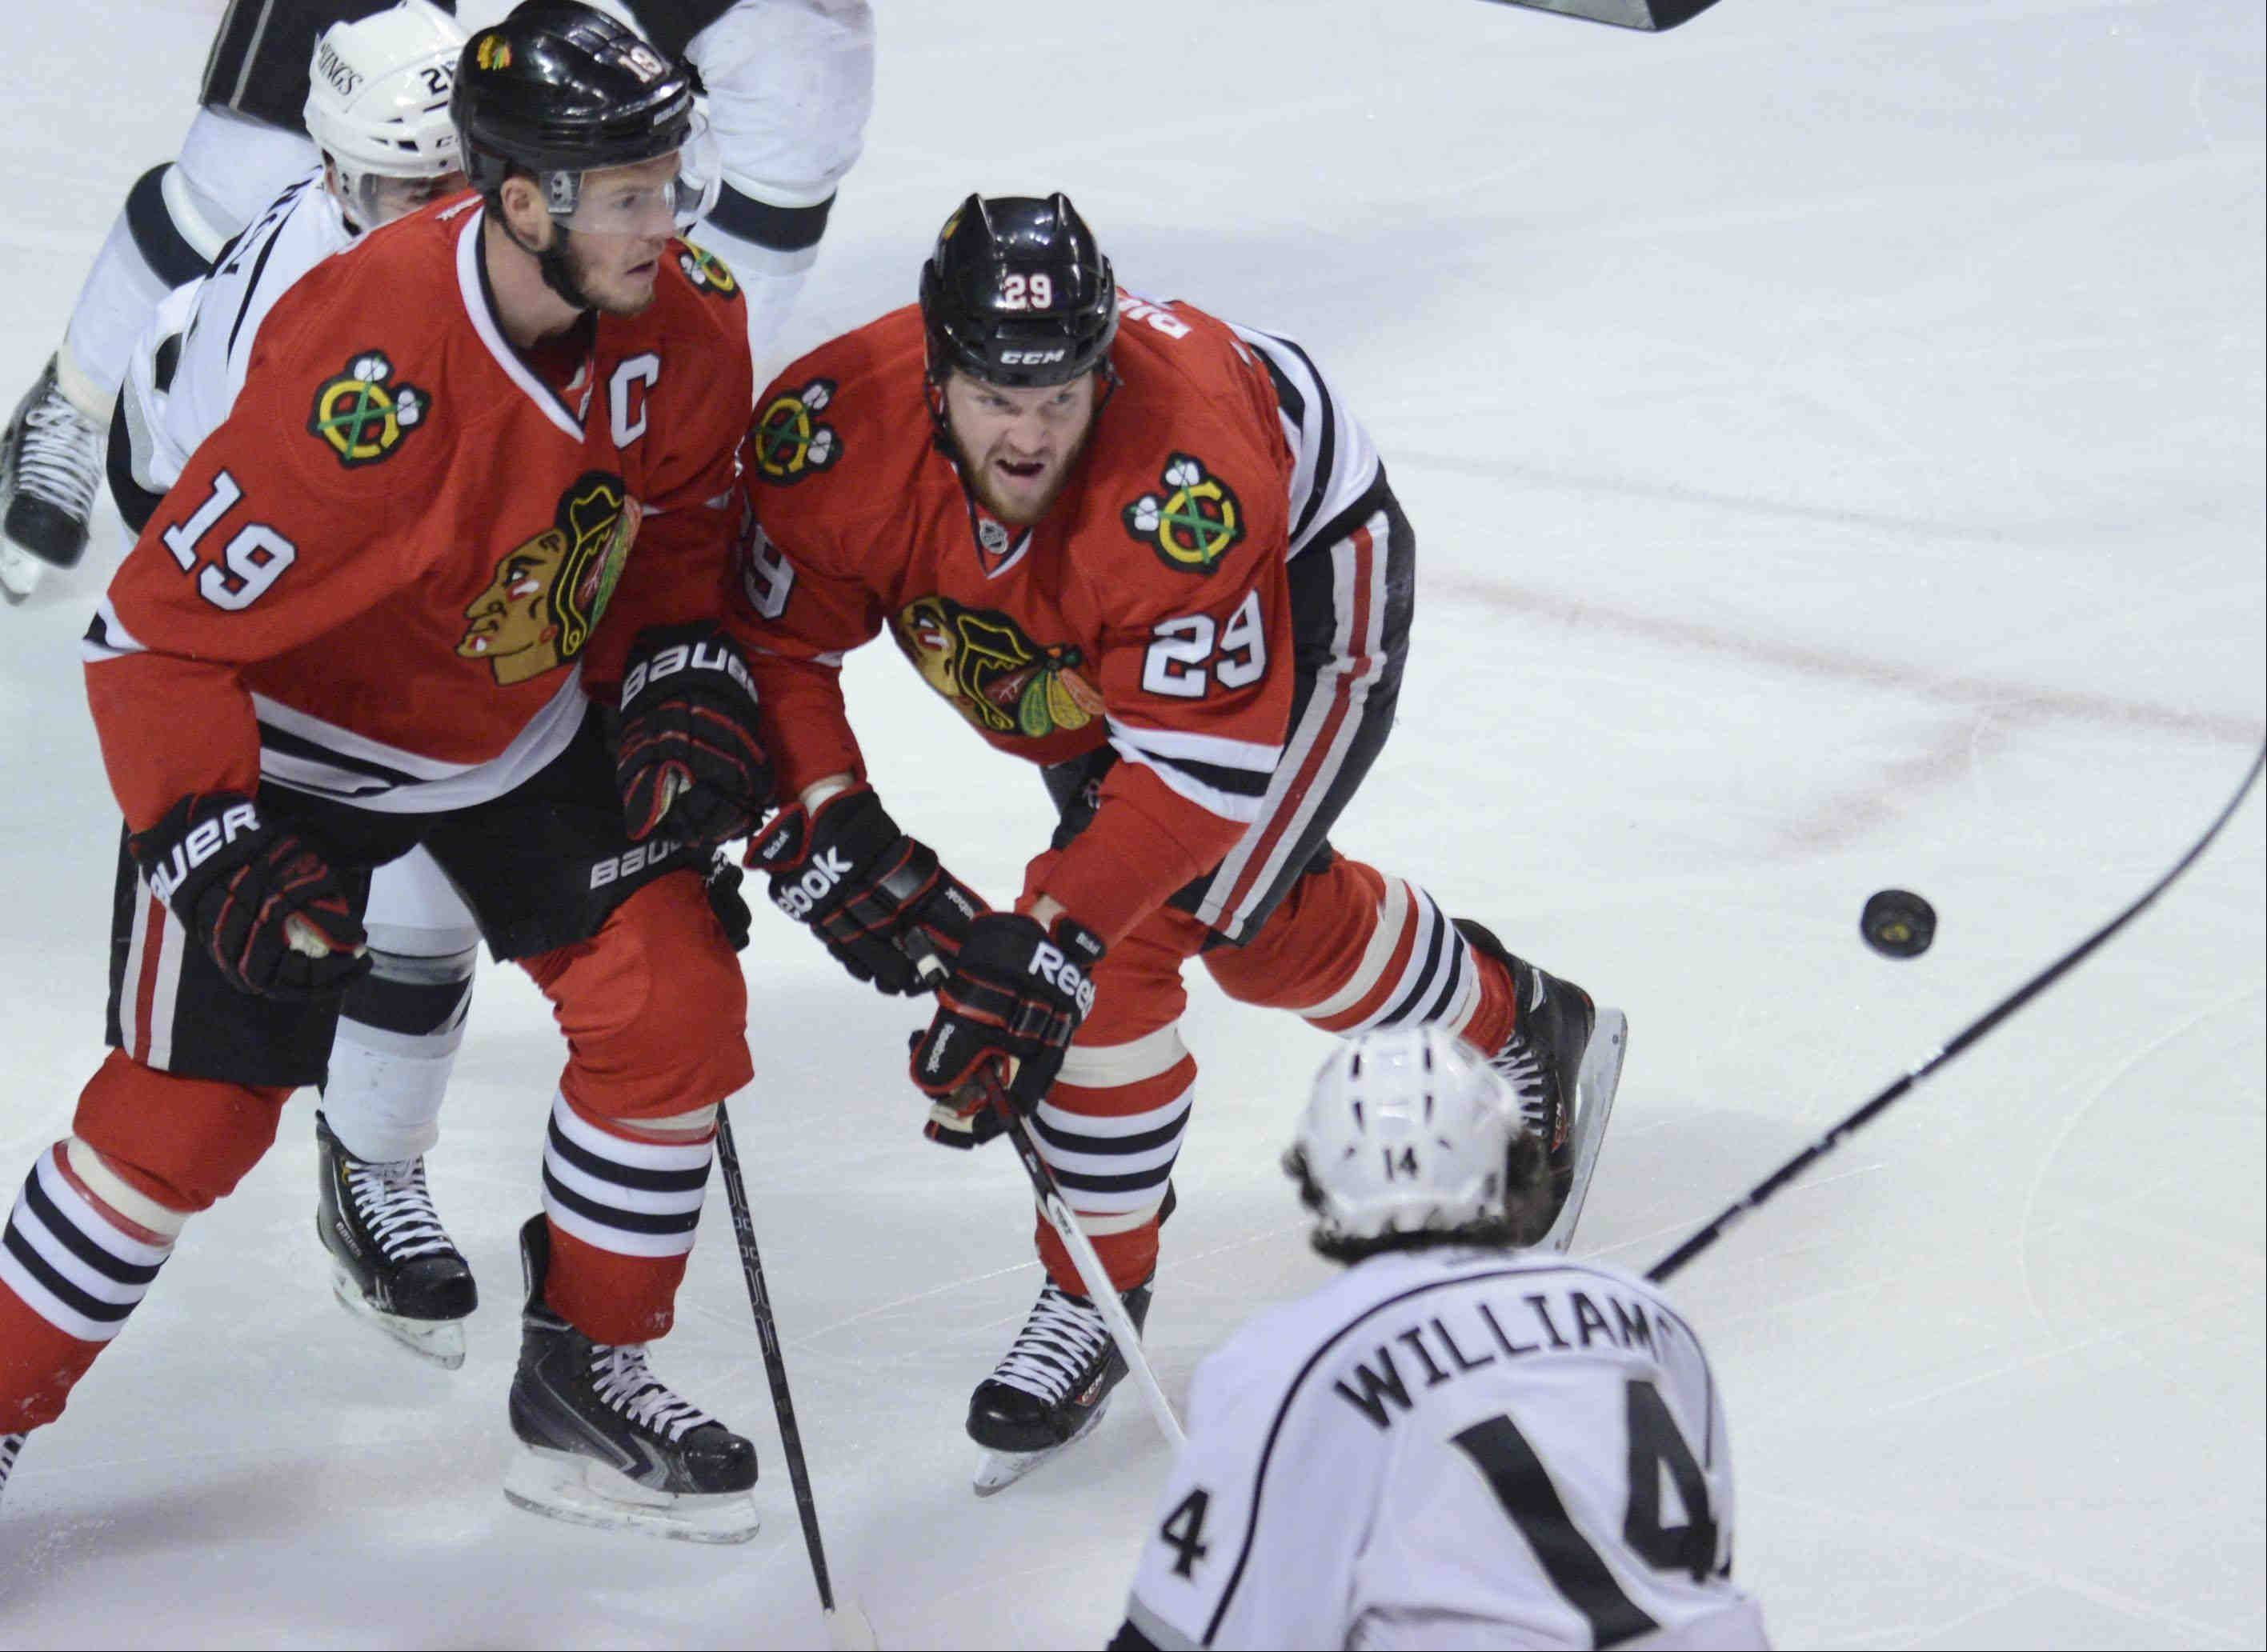 Chicago Blackhawks center Jonathan Toews and Bryan Bickell compete with Los Angeles Kings right wing Justin Williams for the puck in the first period Saturday during the NHL Western Conference Finals Game 5 at the United Center in Chicago.